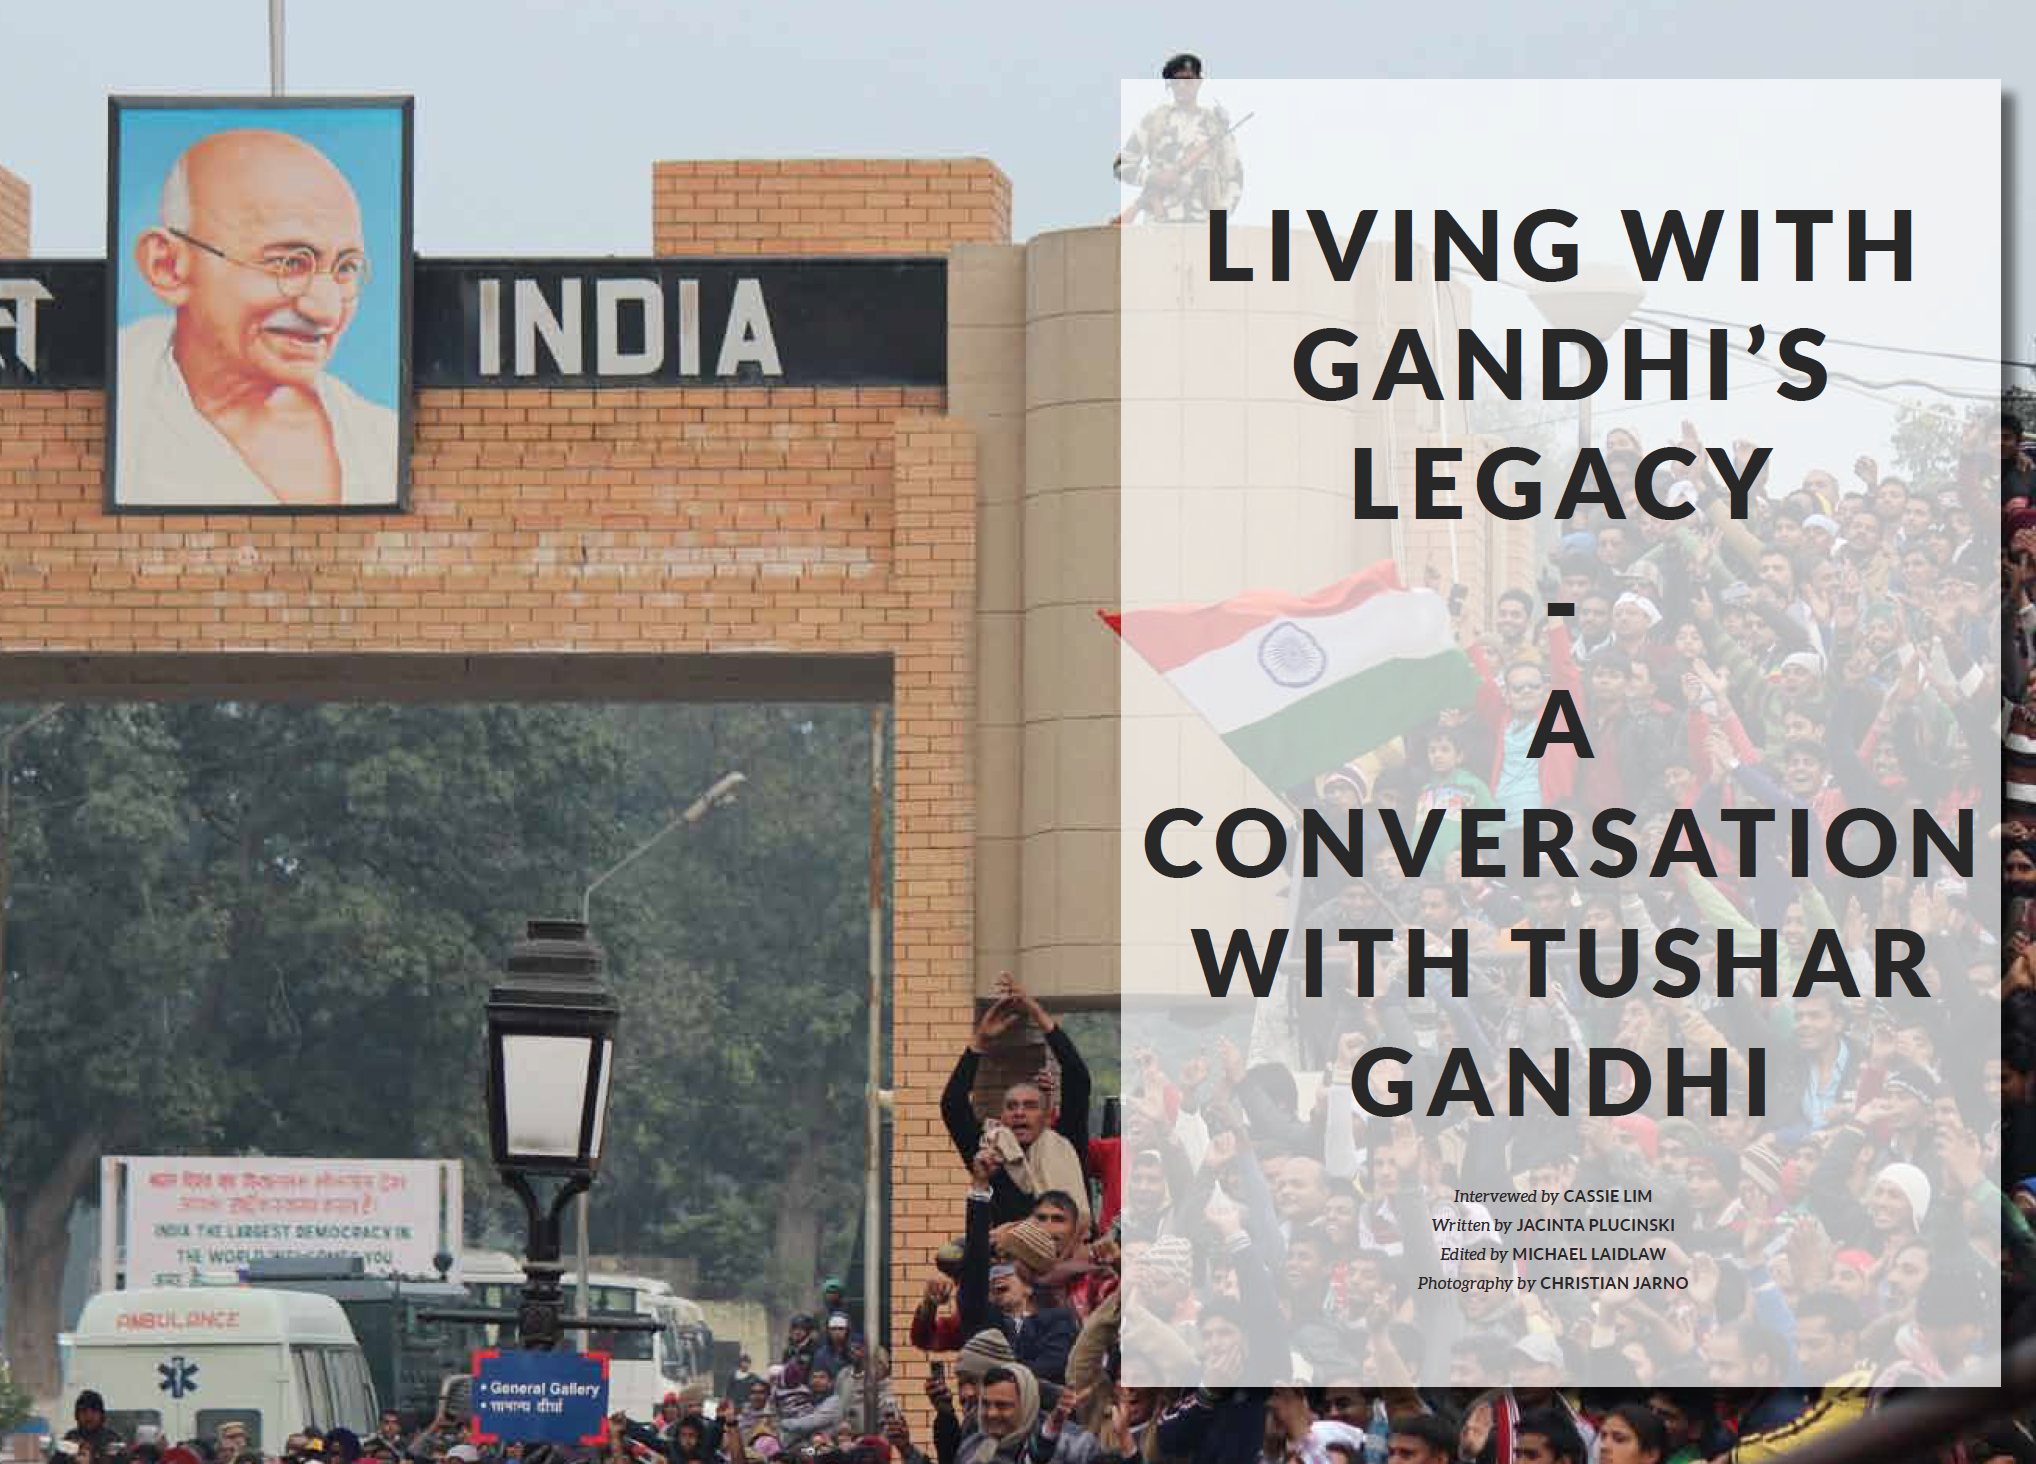 Living with Gandhi's Legacy